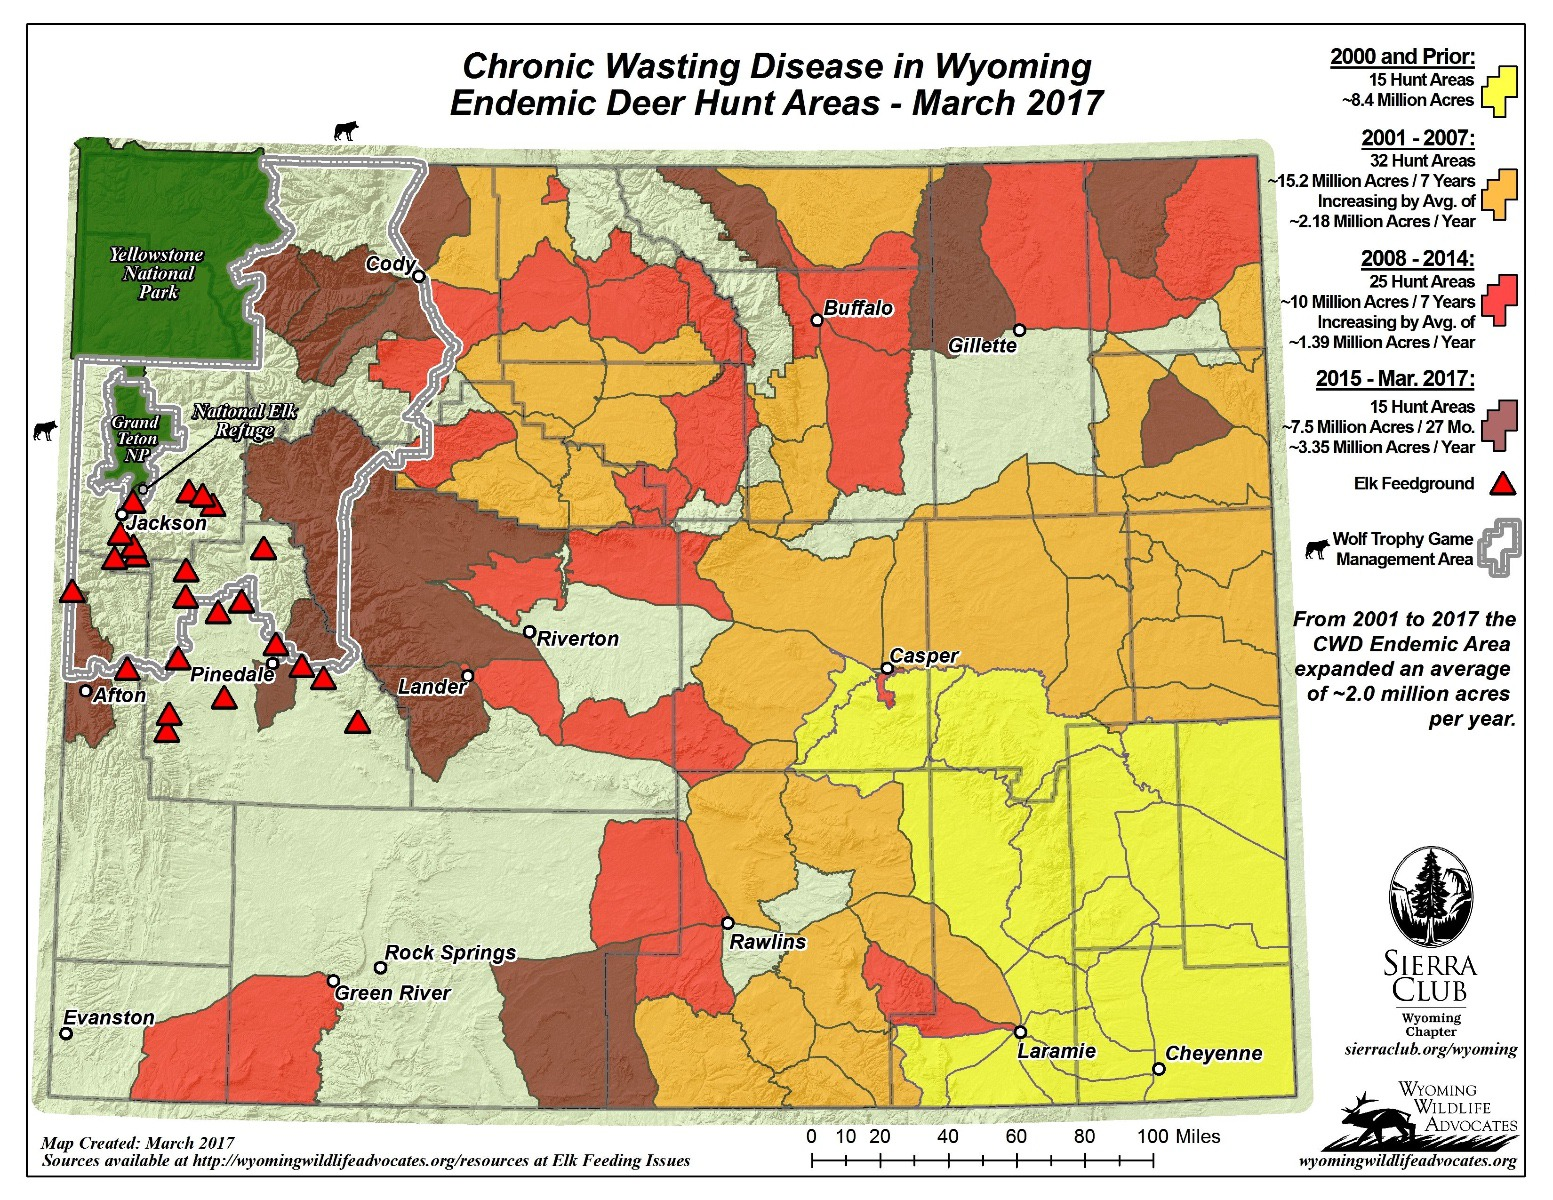 CWD was first diagnosed in southeastern Wyoming (marked in yellow) and over the last three decades has expanded in deer herds.  The disease is now bearing down on the Greater Yellowstone Ecosystem in the northwest corner of the state and  pressing up against the states of both Montana and Idaho.  The location of Wyoming's 22 elk feedgrounds are marked by red triangles.  The National Elk Refuge is located just south of Yellowstone National Park and east of Grand Teton National Park. Map courtesy Wyoming Chapter of the Sierra Club and Wyoming Wildlife Advocates